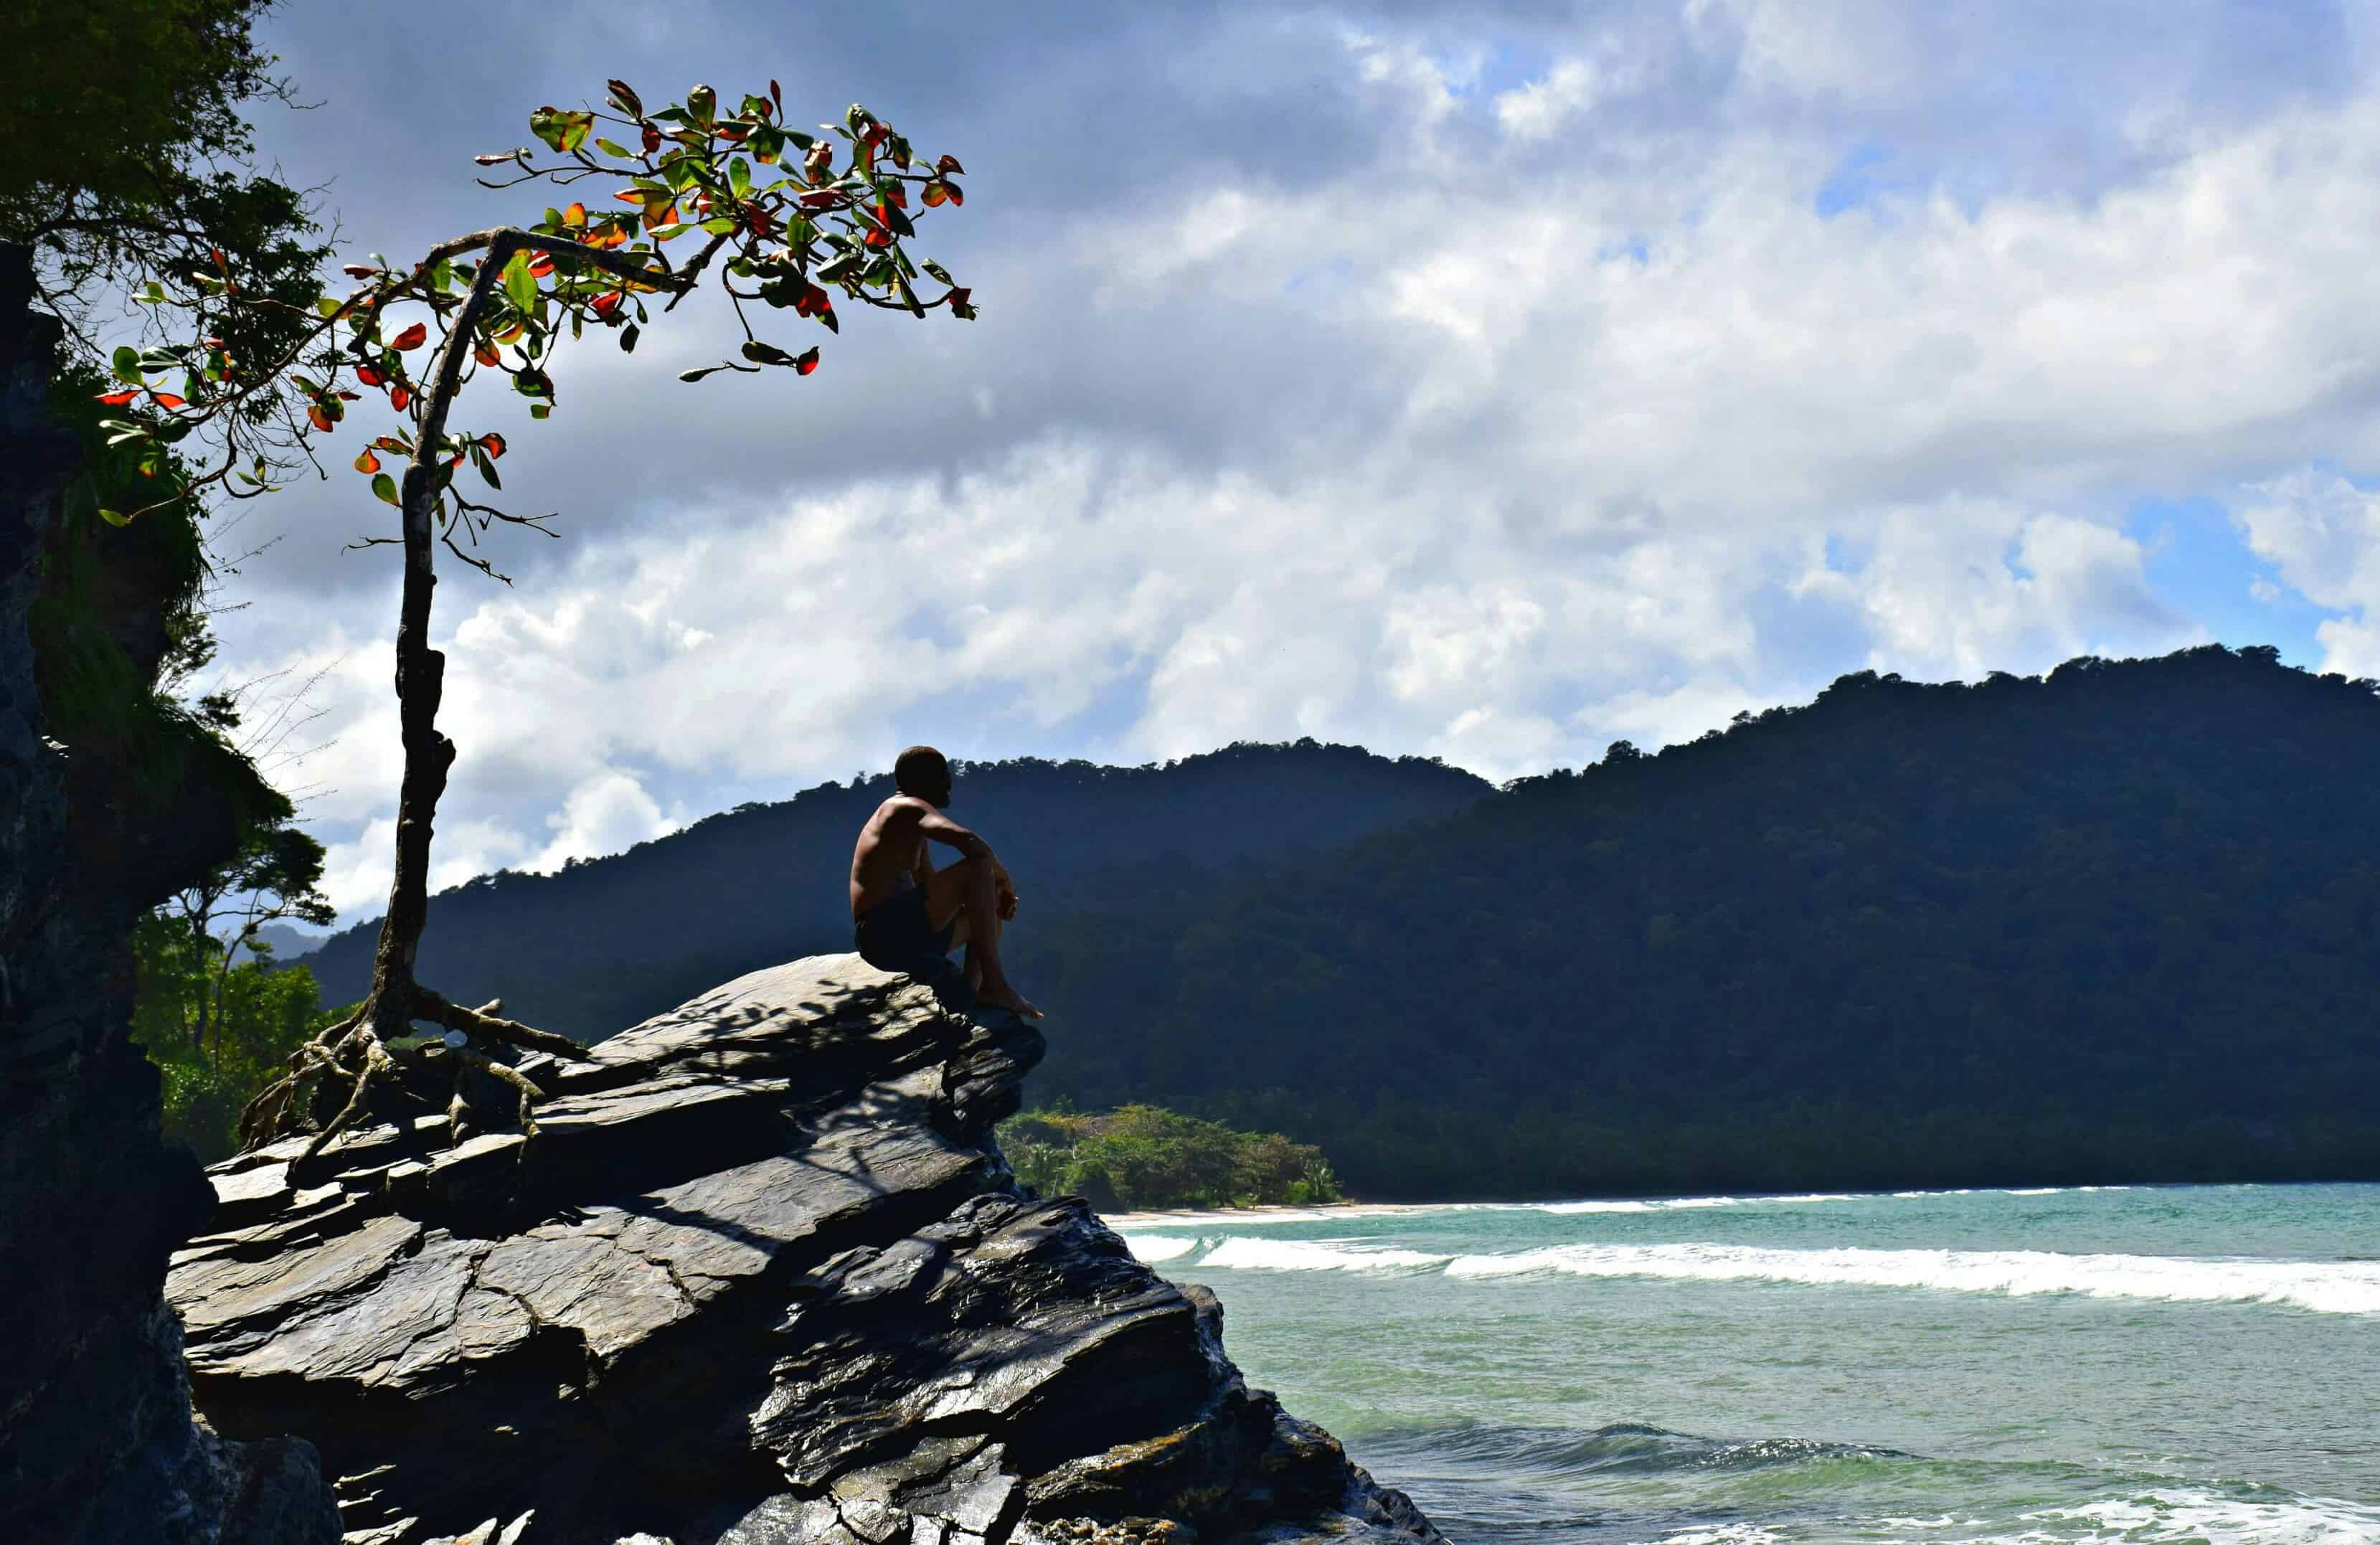 The Grand Tour Season 2 >> 6 Reasons To Visit This Unique Beach in Trinidad - Travel Bliss Now